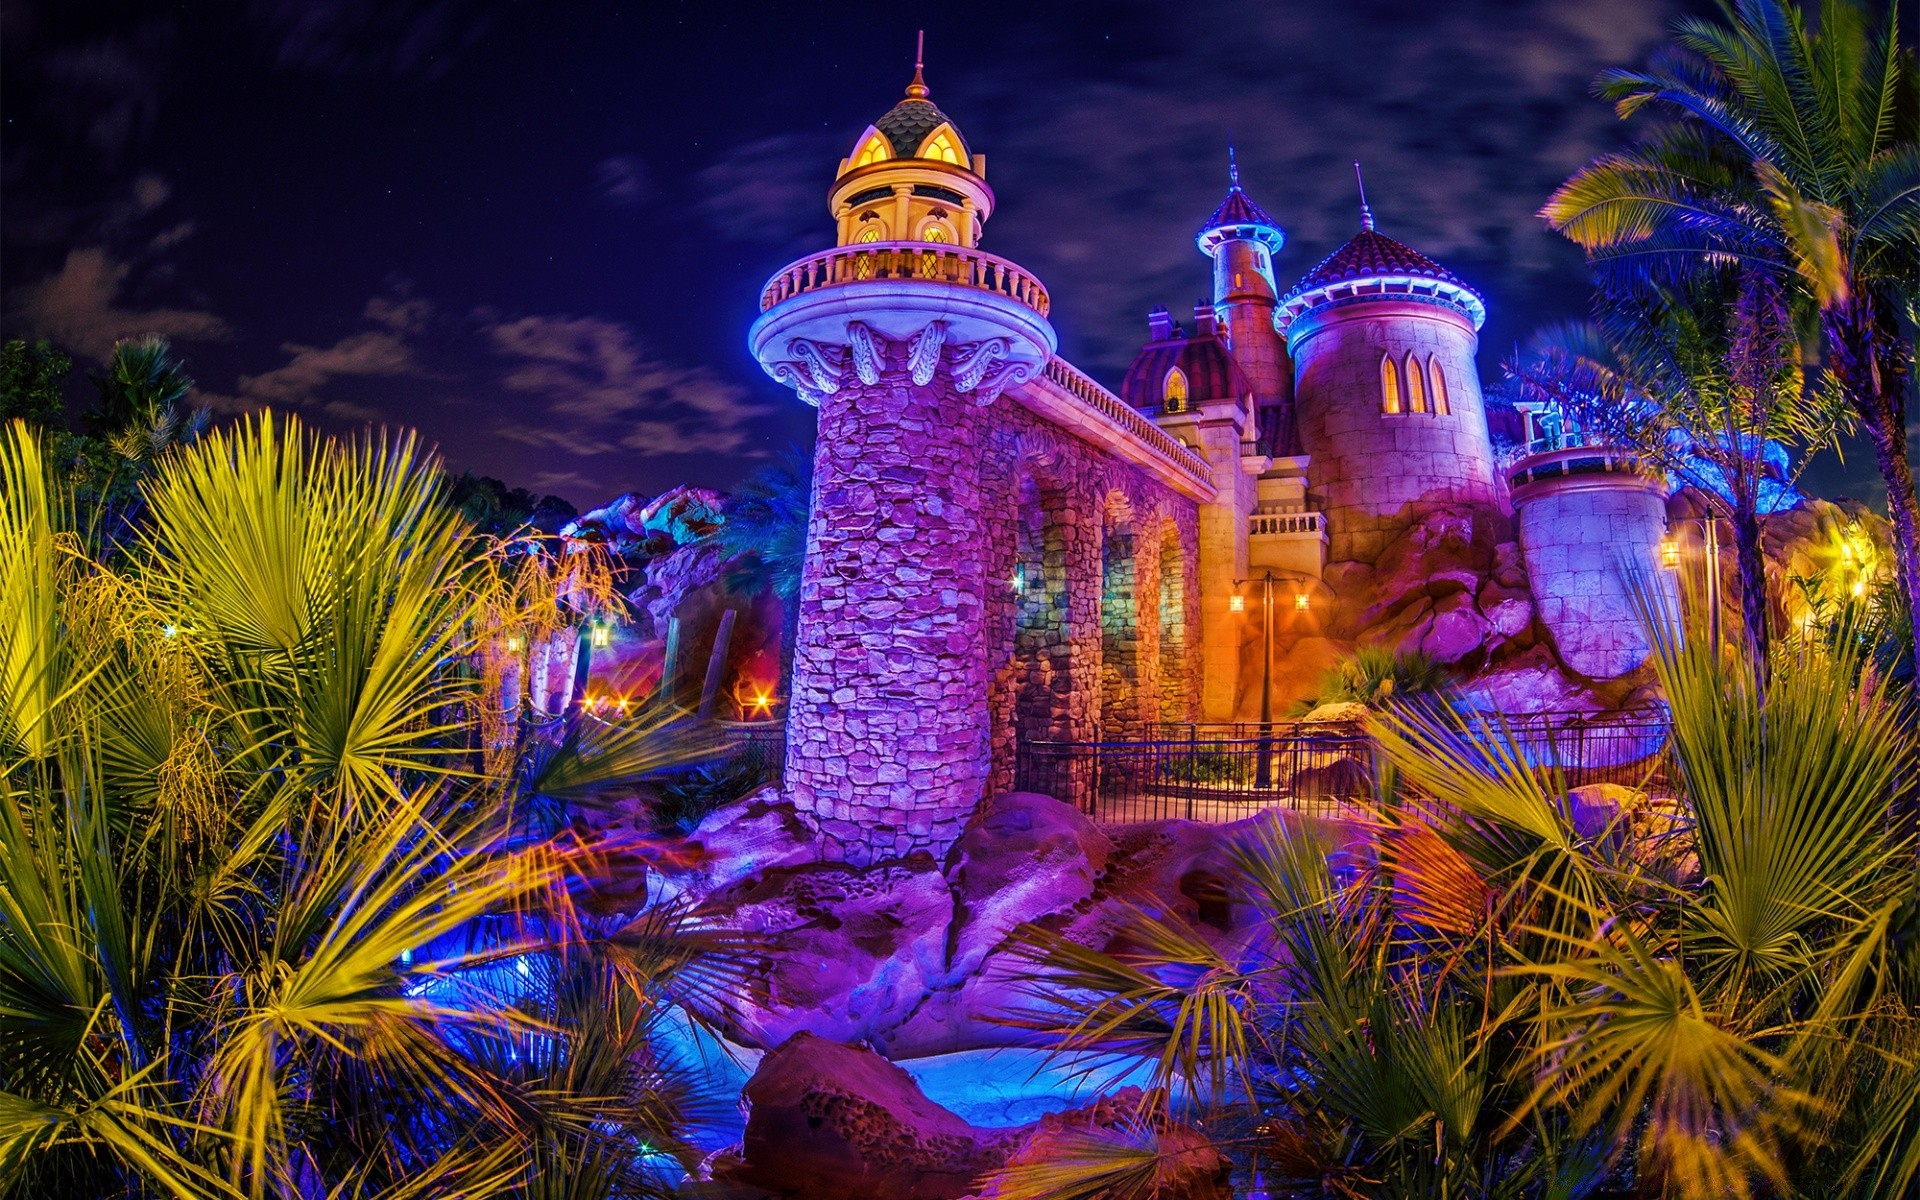 house and comfort travel casino light evening water art outdoors